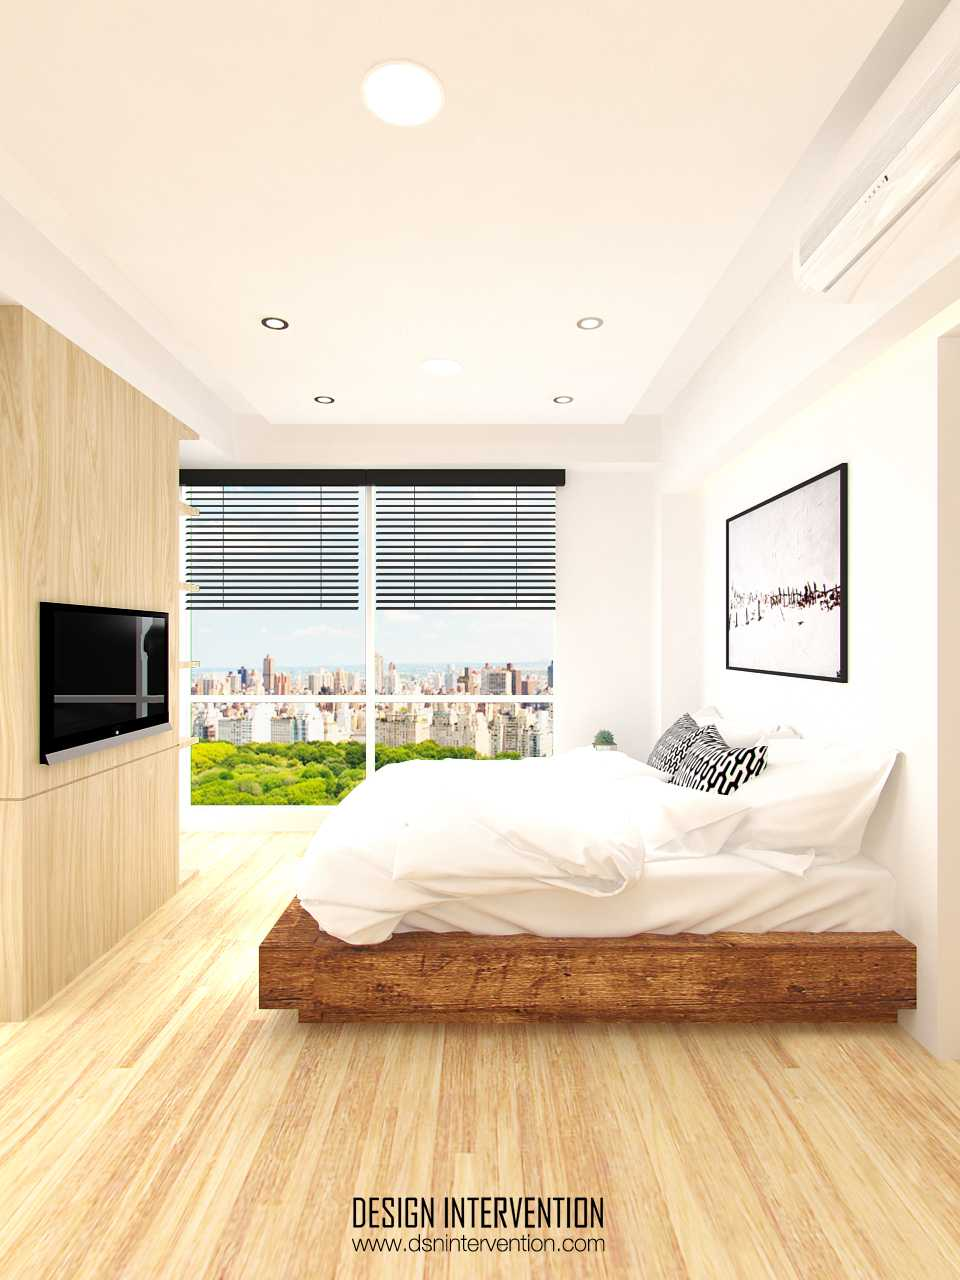 Design Intervention Pk Apartment Puri Kasablanka Apartment Puri Kasablanka Apartment Bedroom View Industrial  14974